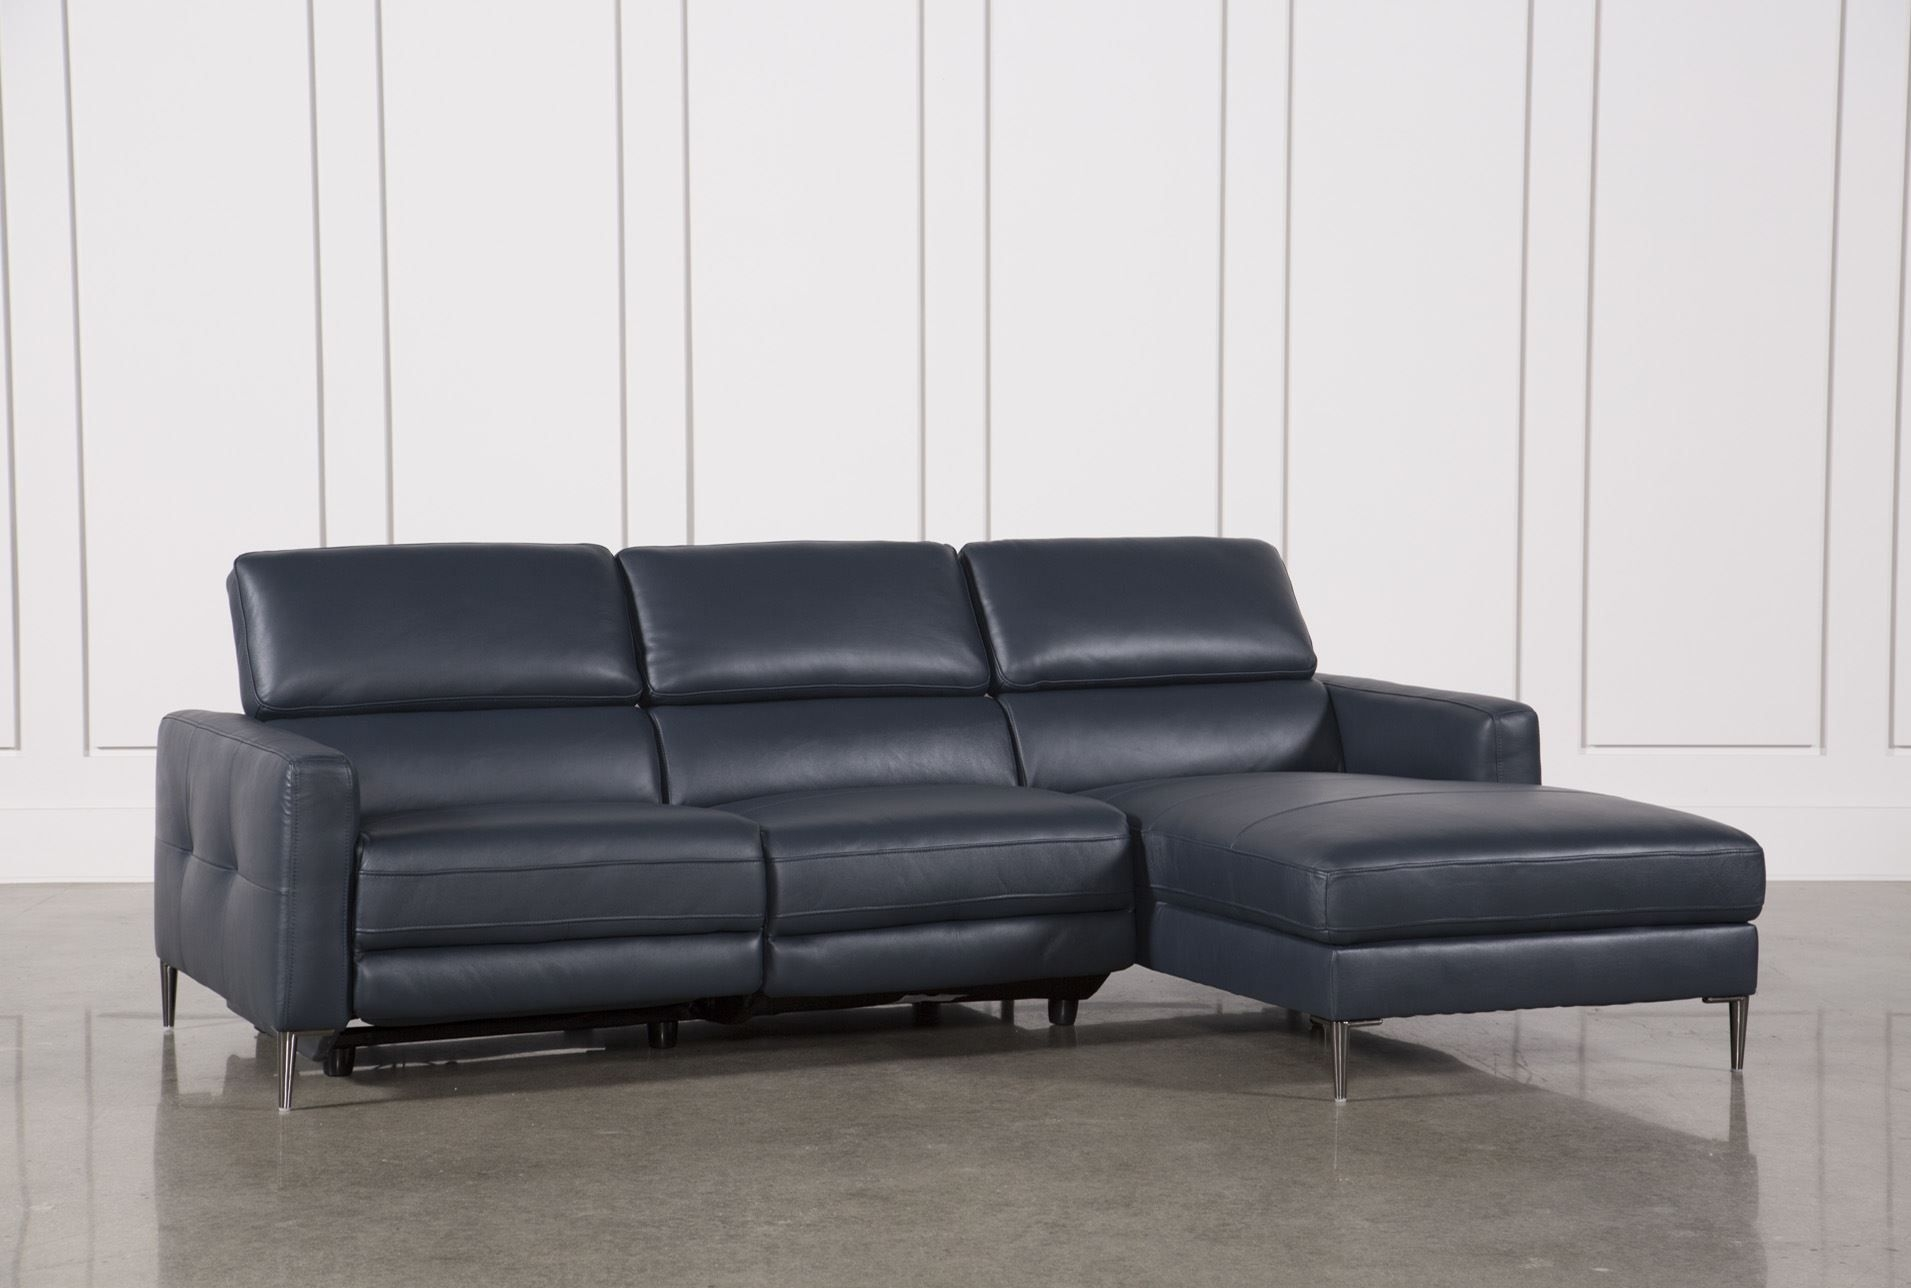 Tara Blue 2 Piece Right Facing Chaise Sofa | Chaise Sofa, Living Within Tatum Dark Grey 2 Piece Sectionals With Raf Chaise (Image 19 of 25)